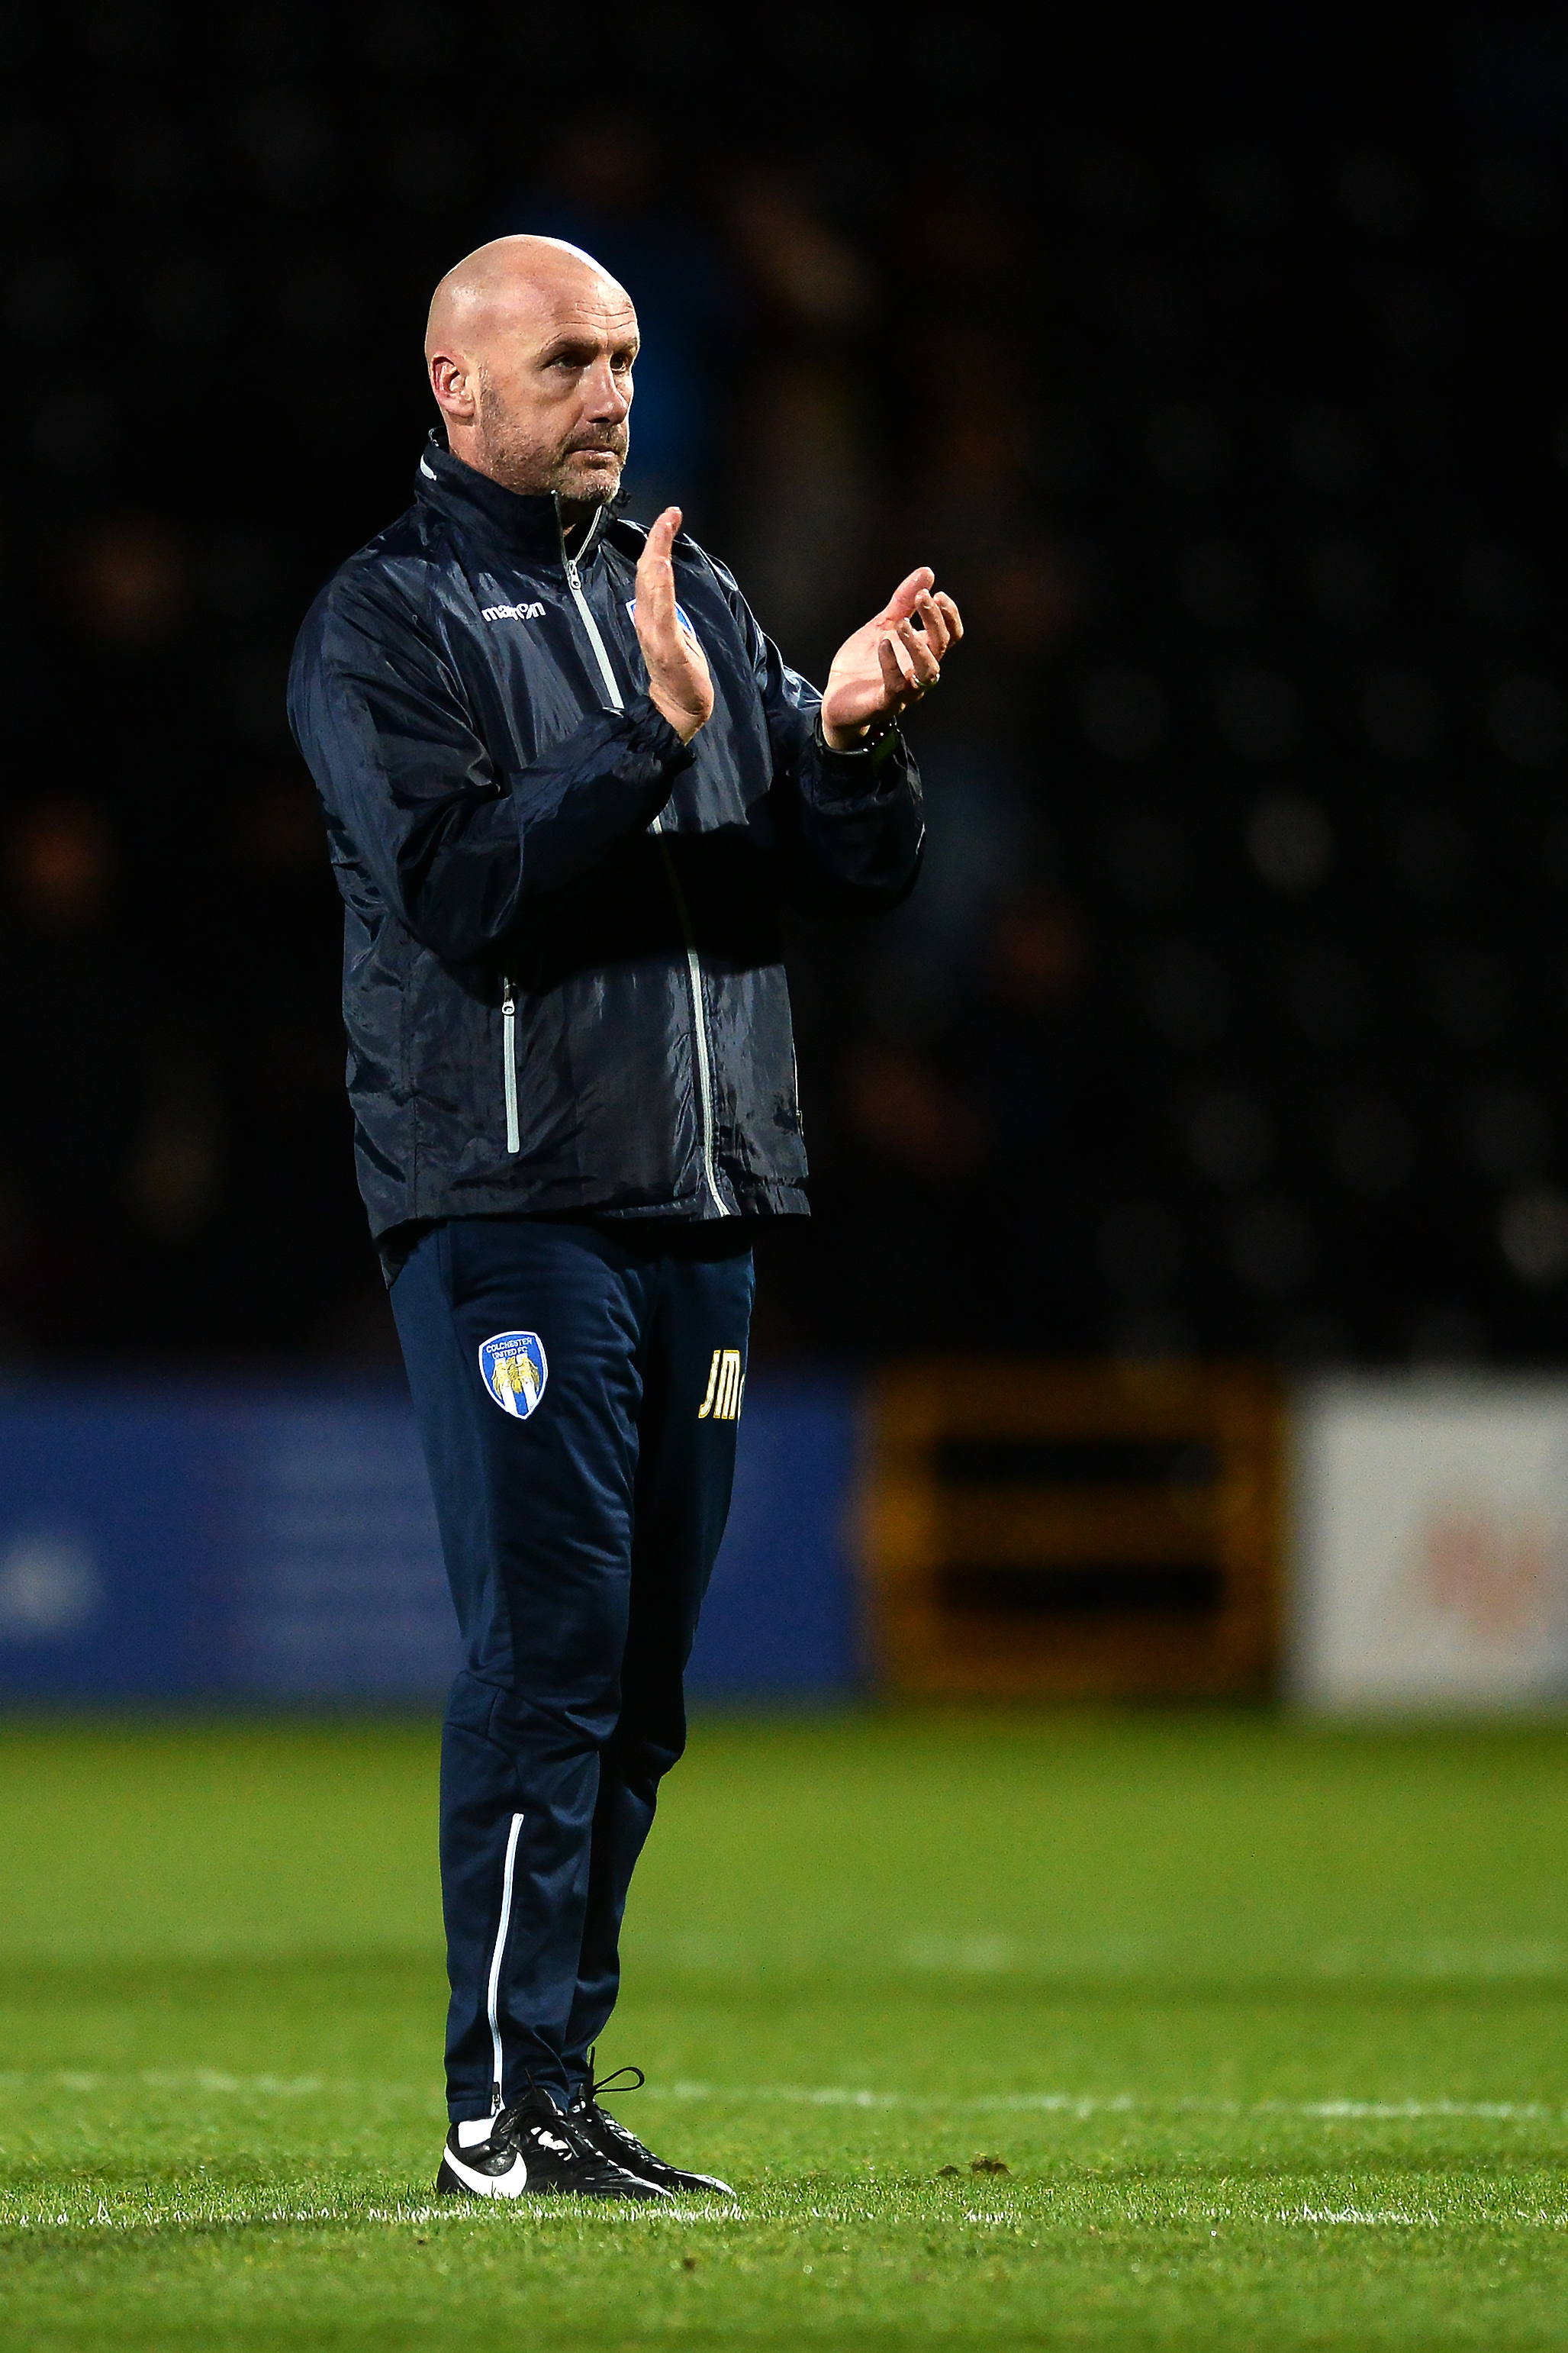 Outstanding - John McGreal led Colchester United to four wins in League Two last month Picture: RICHARD BLAXALL